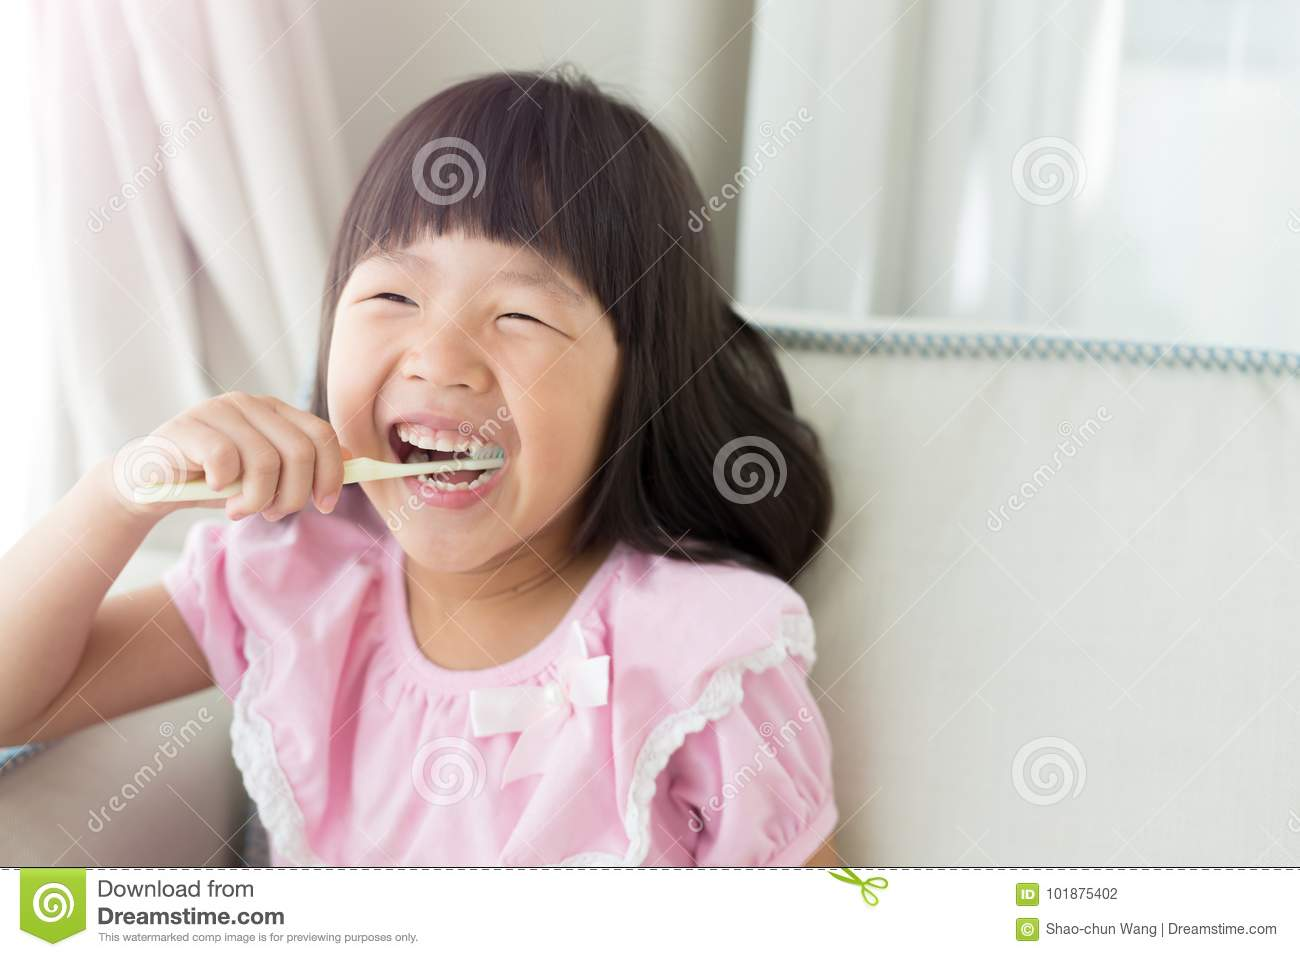 7dd080d580 Cute girl brush teeth stock photo. Image of healthcare - 101875402